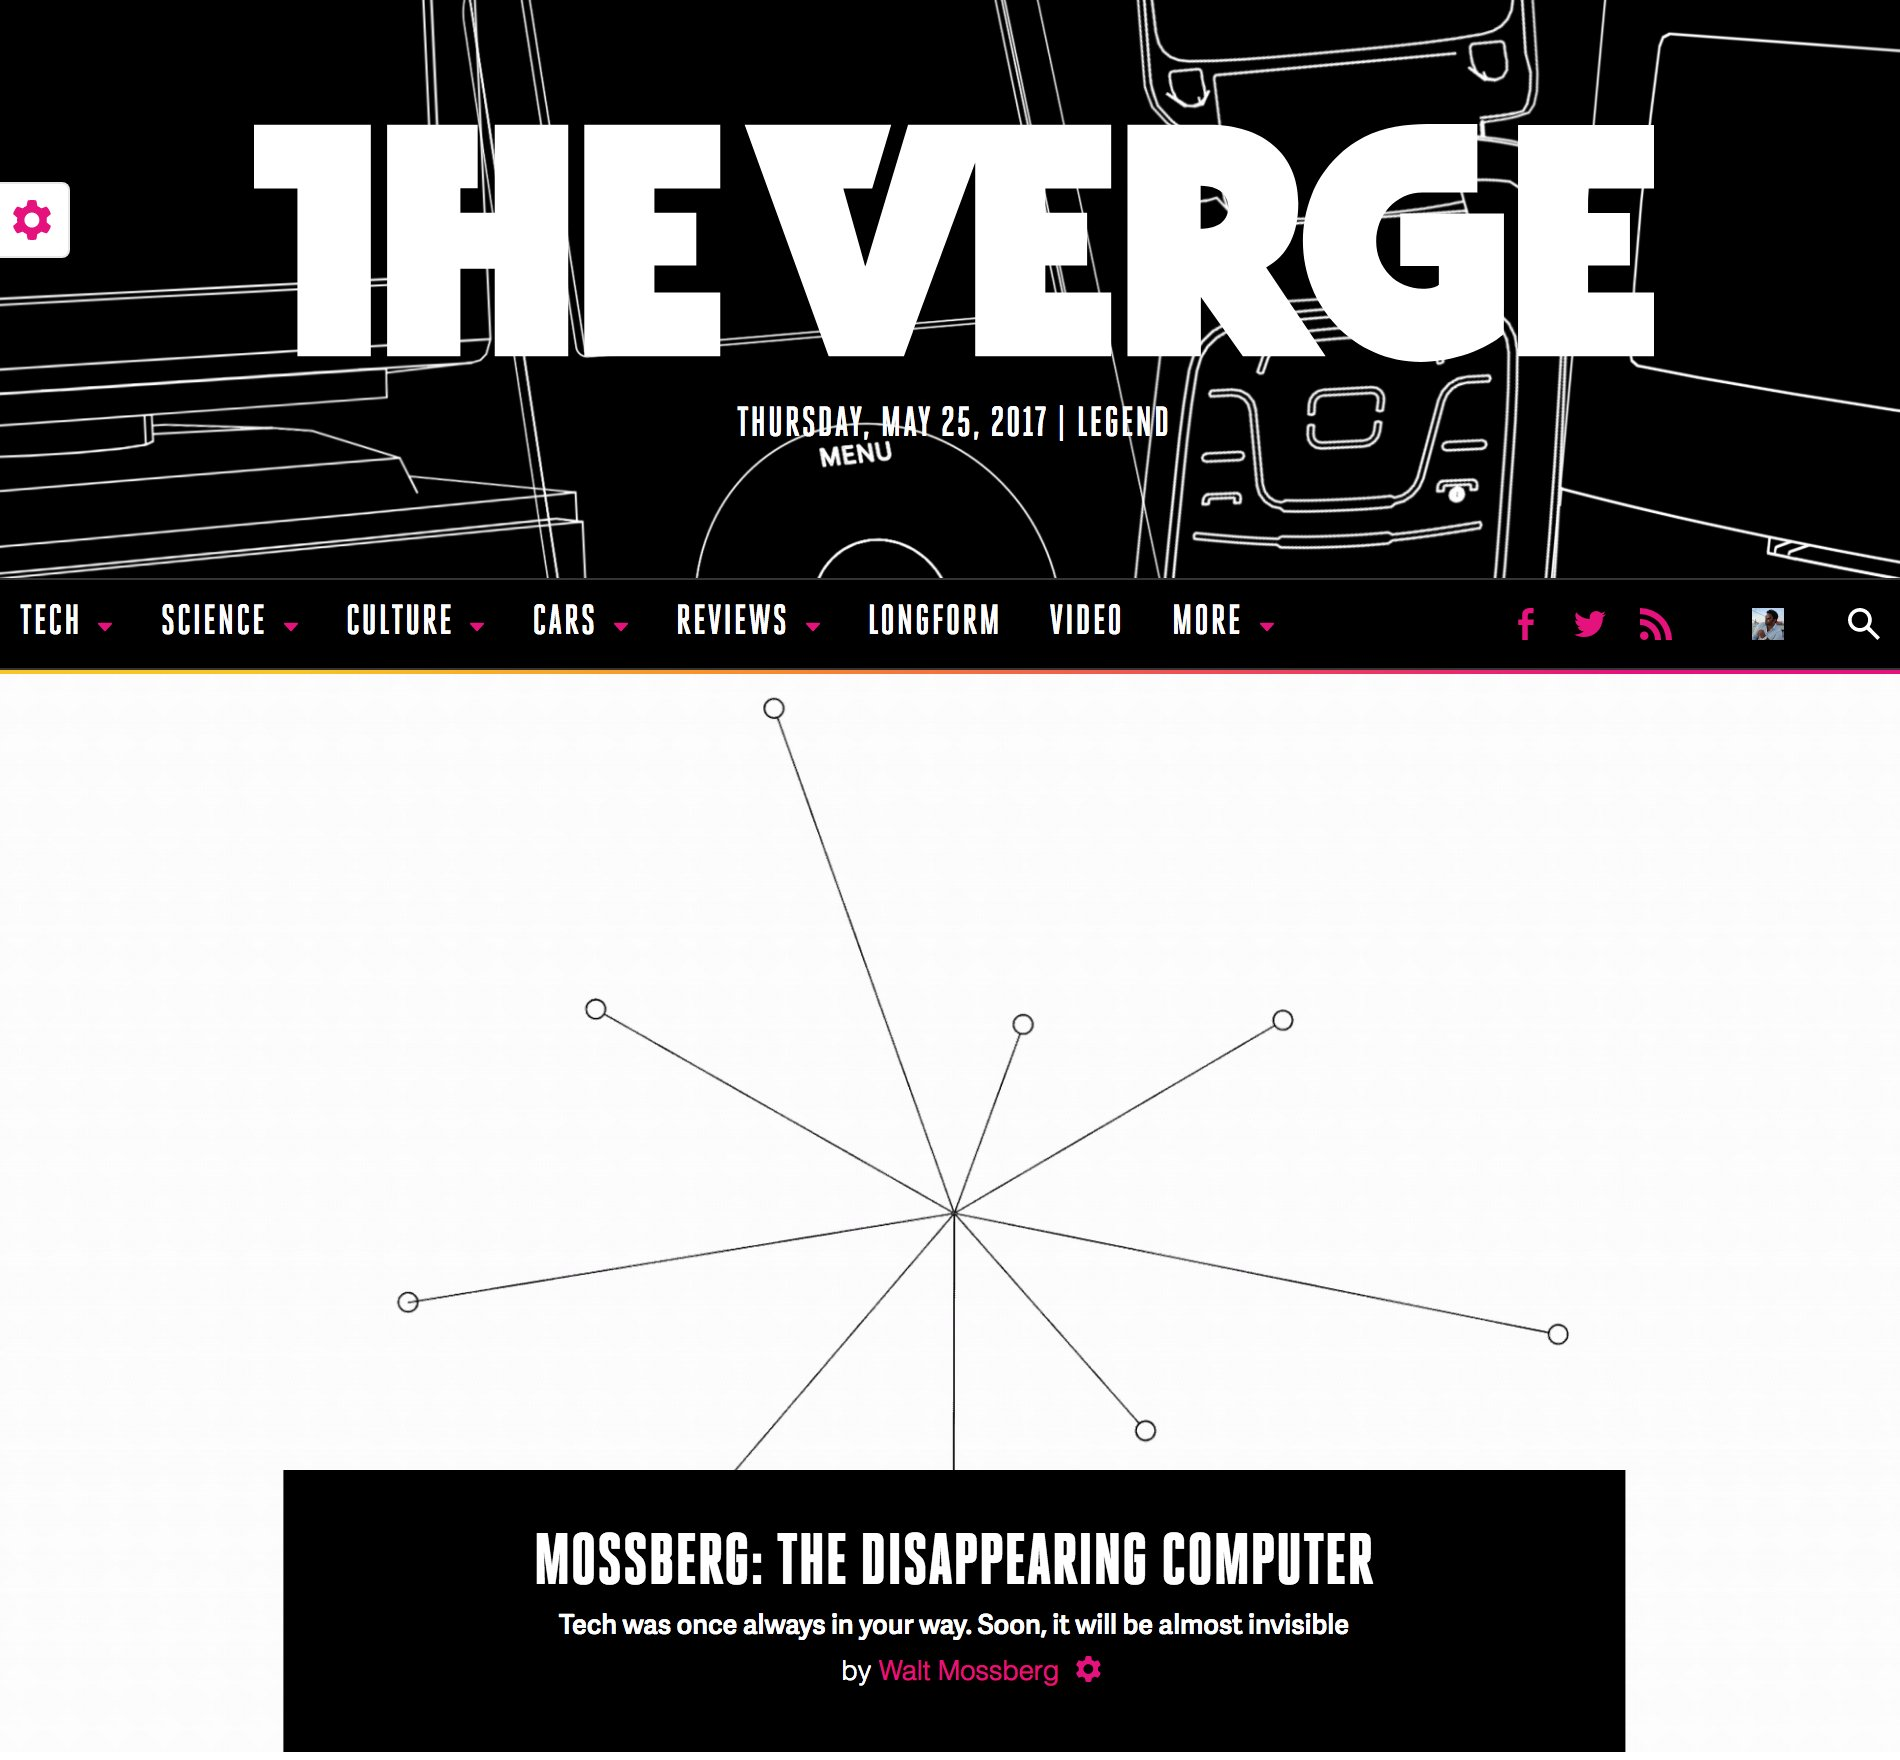 Update: @billiamjoel made the all-@waltmossberg Verge home page even cooler. https://t.co/T3J1t0XXUU